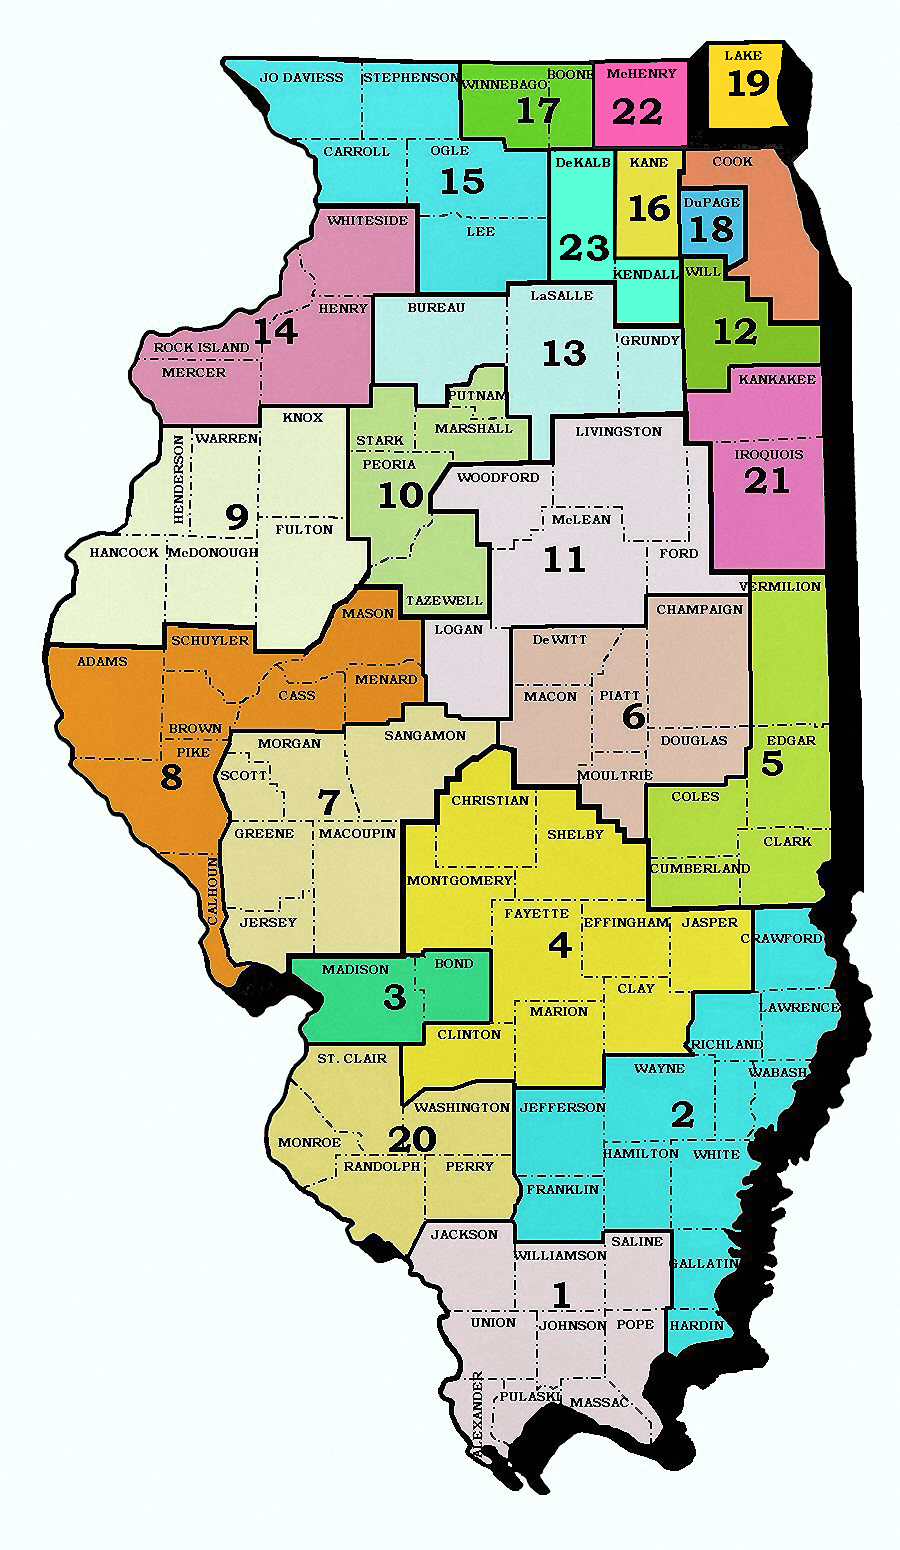 Maps Directions 19th Judicial Circuit Court Il